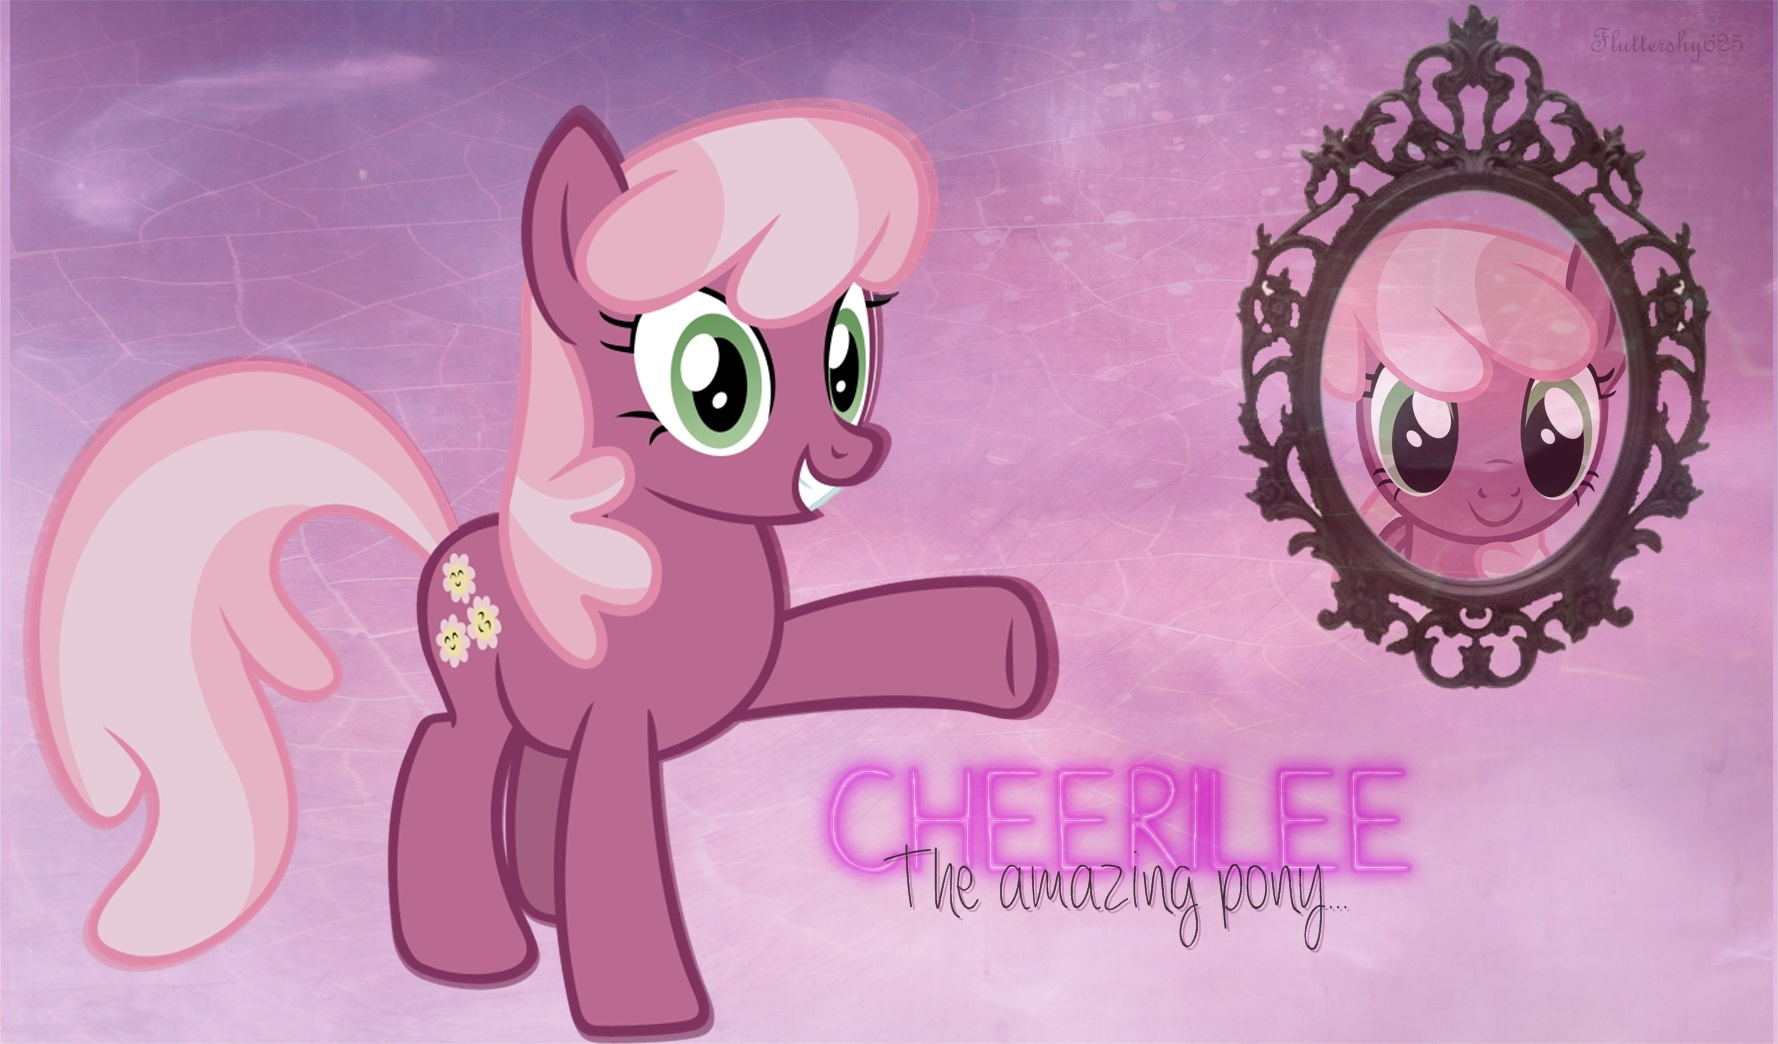 Cheerilee_wallpaper_by_artist-fluttershy